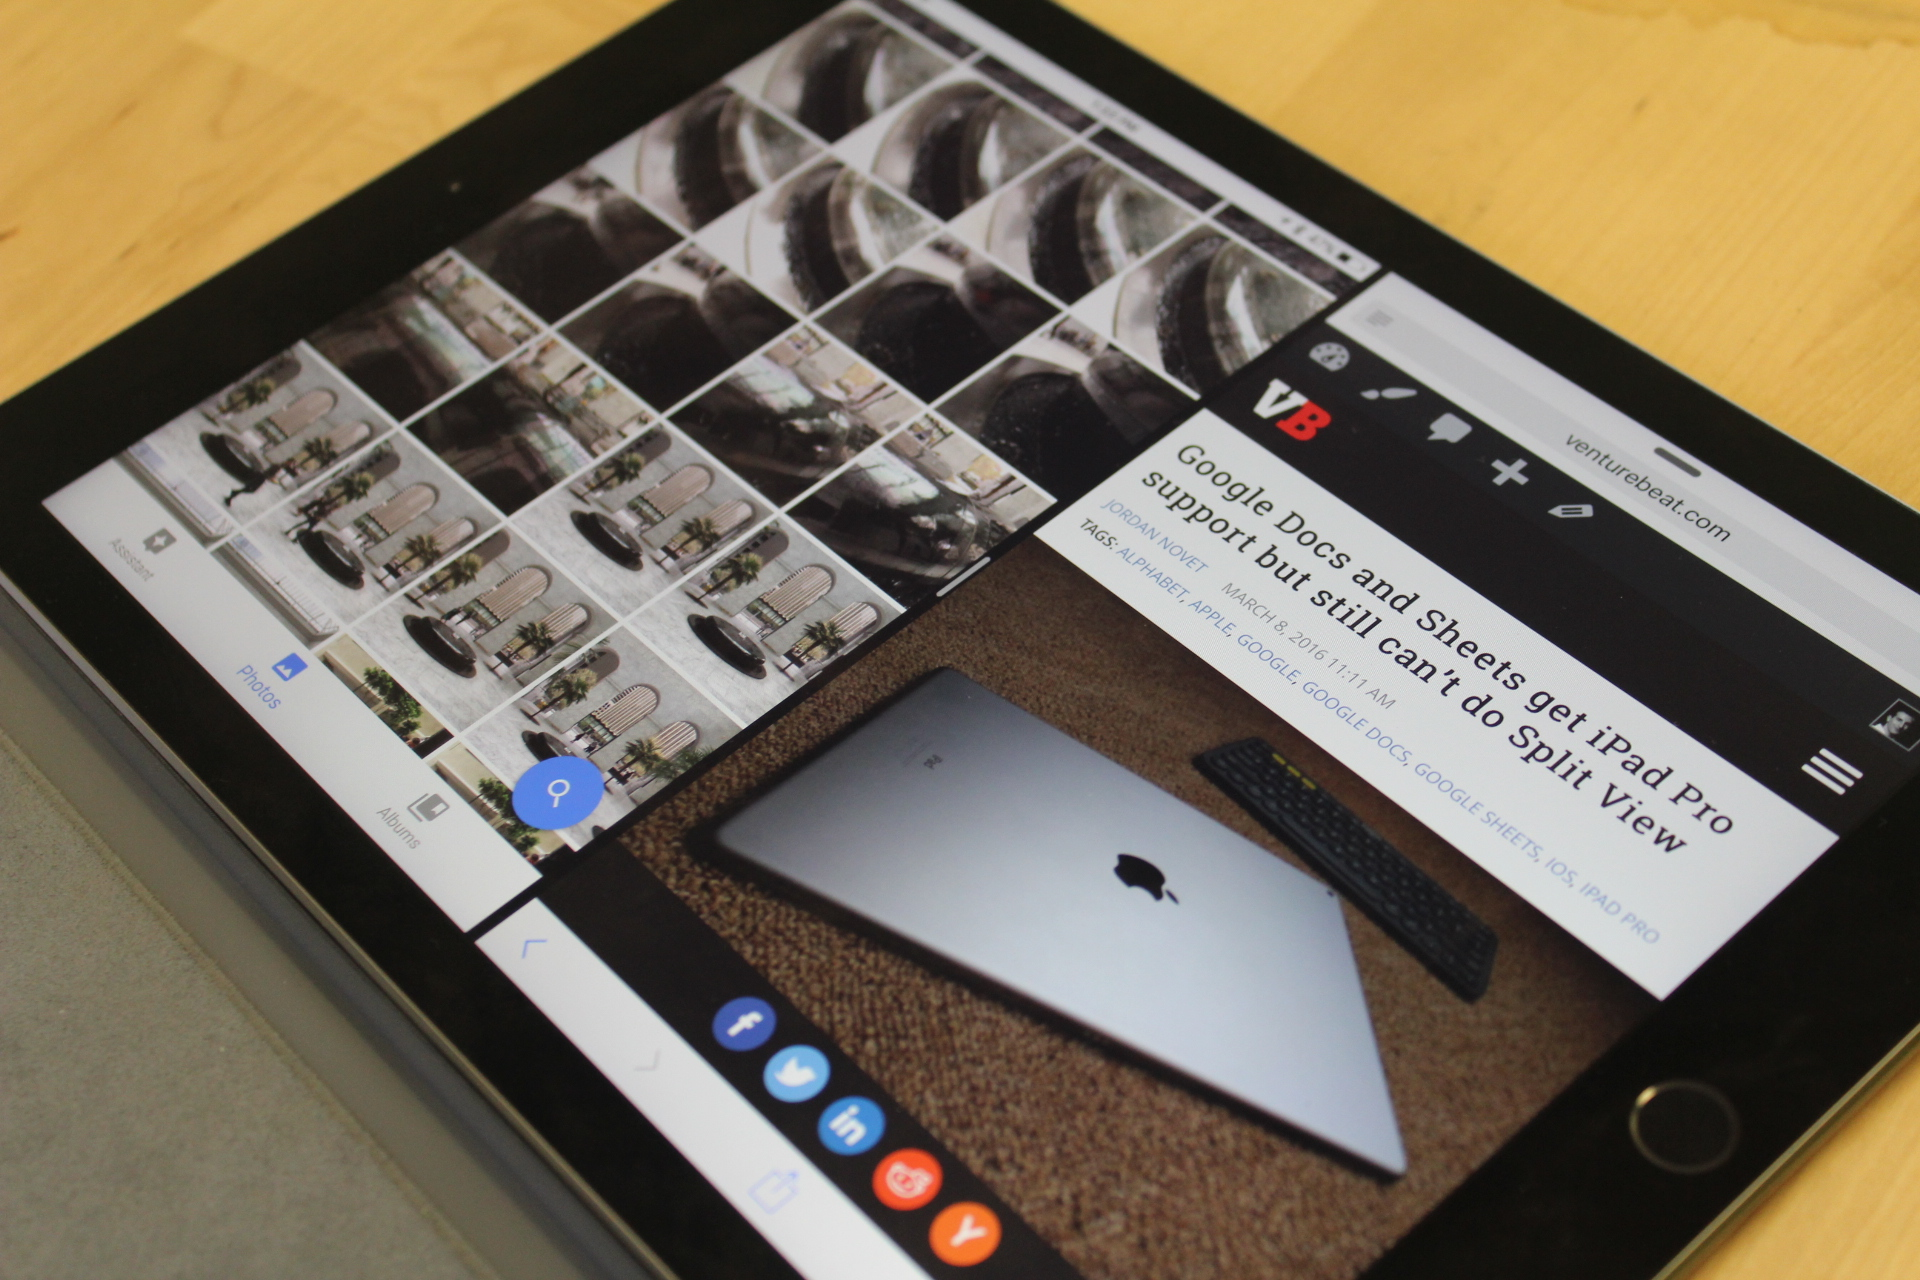 The iPad Pro in Split View.